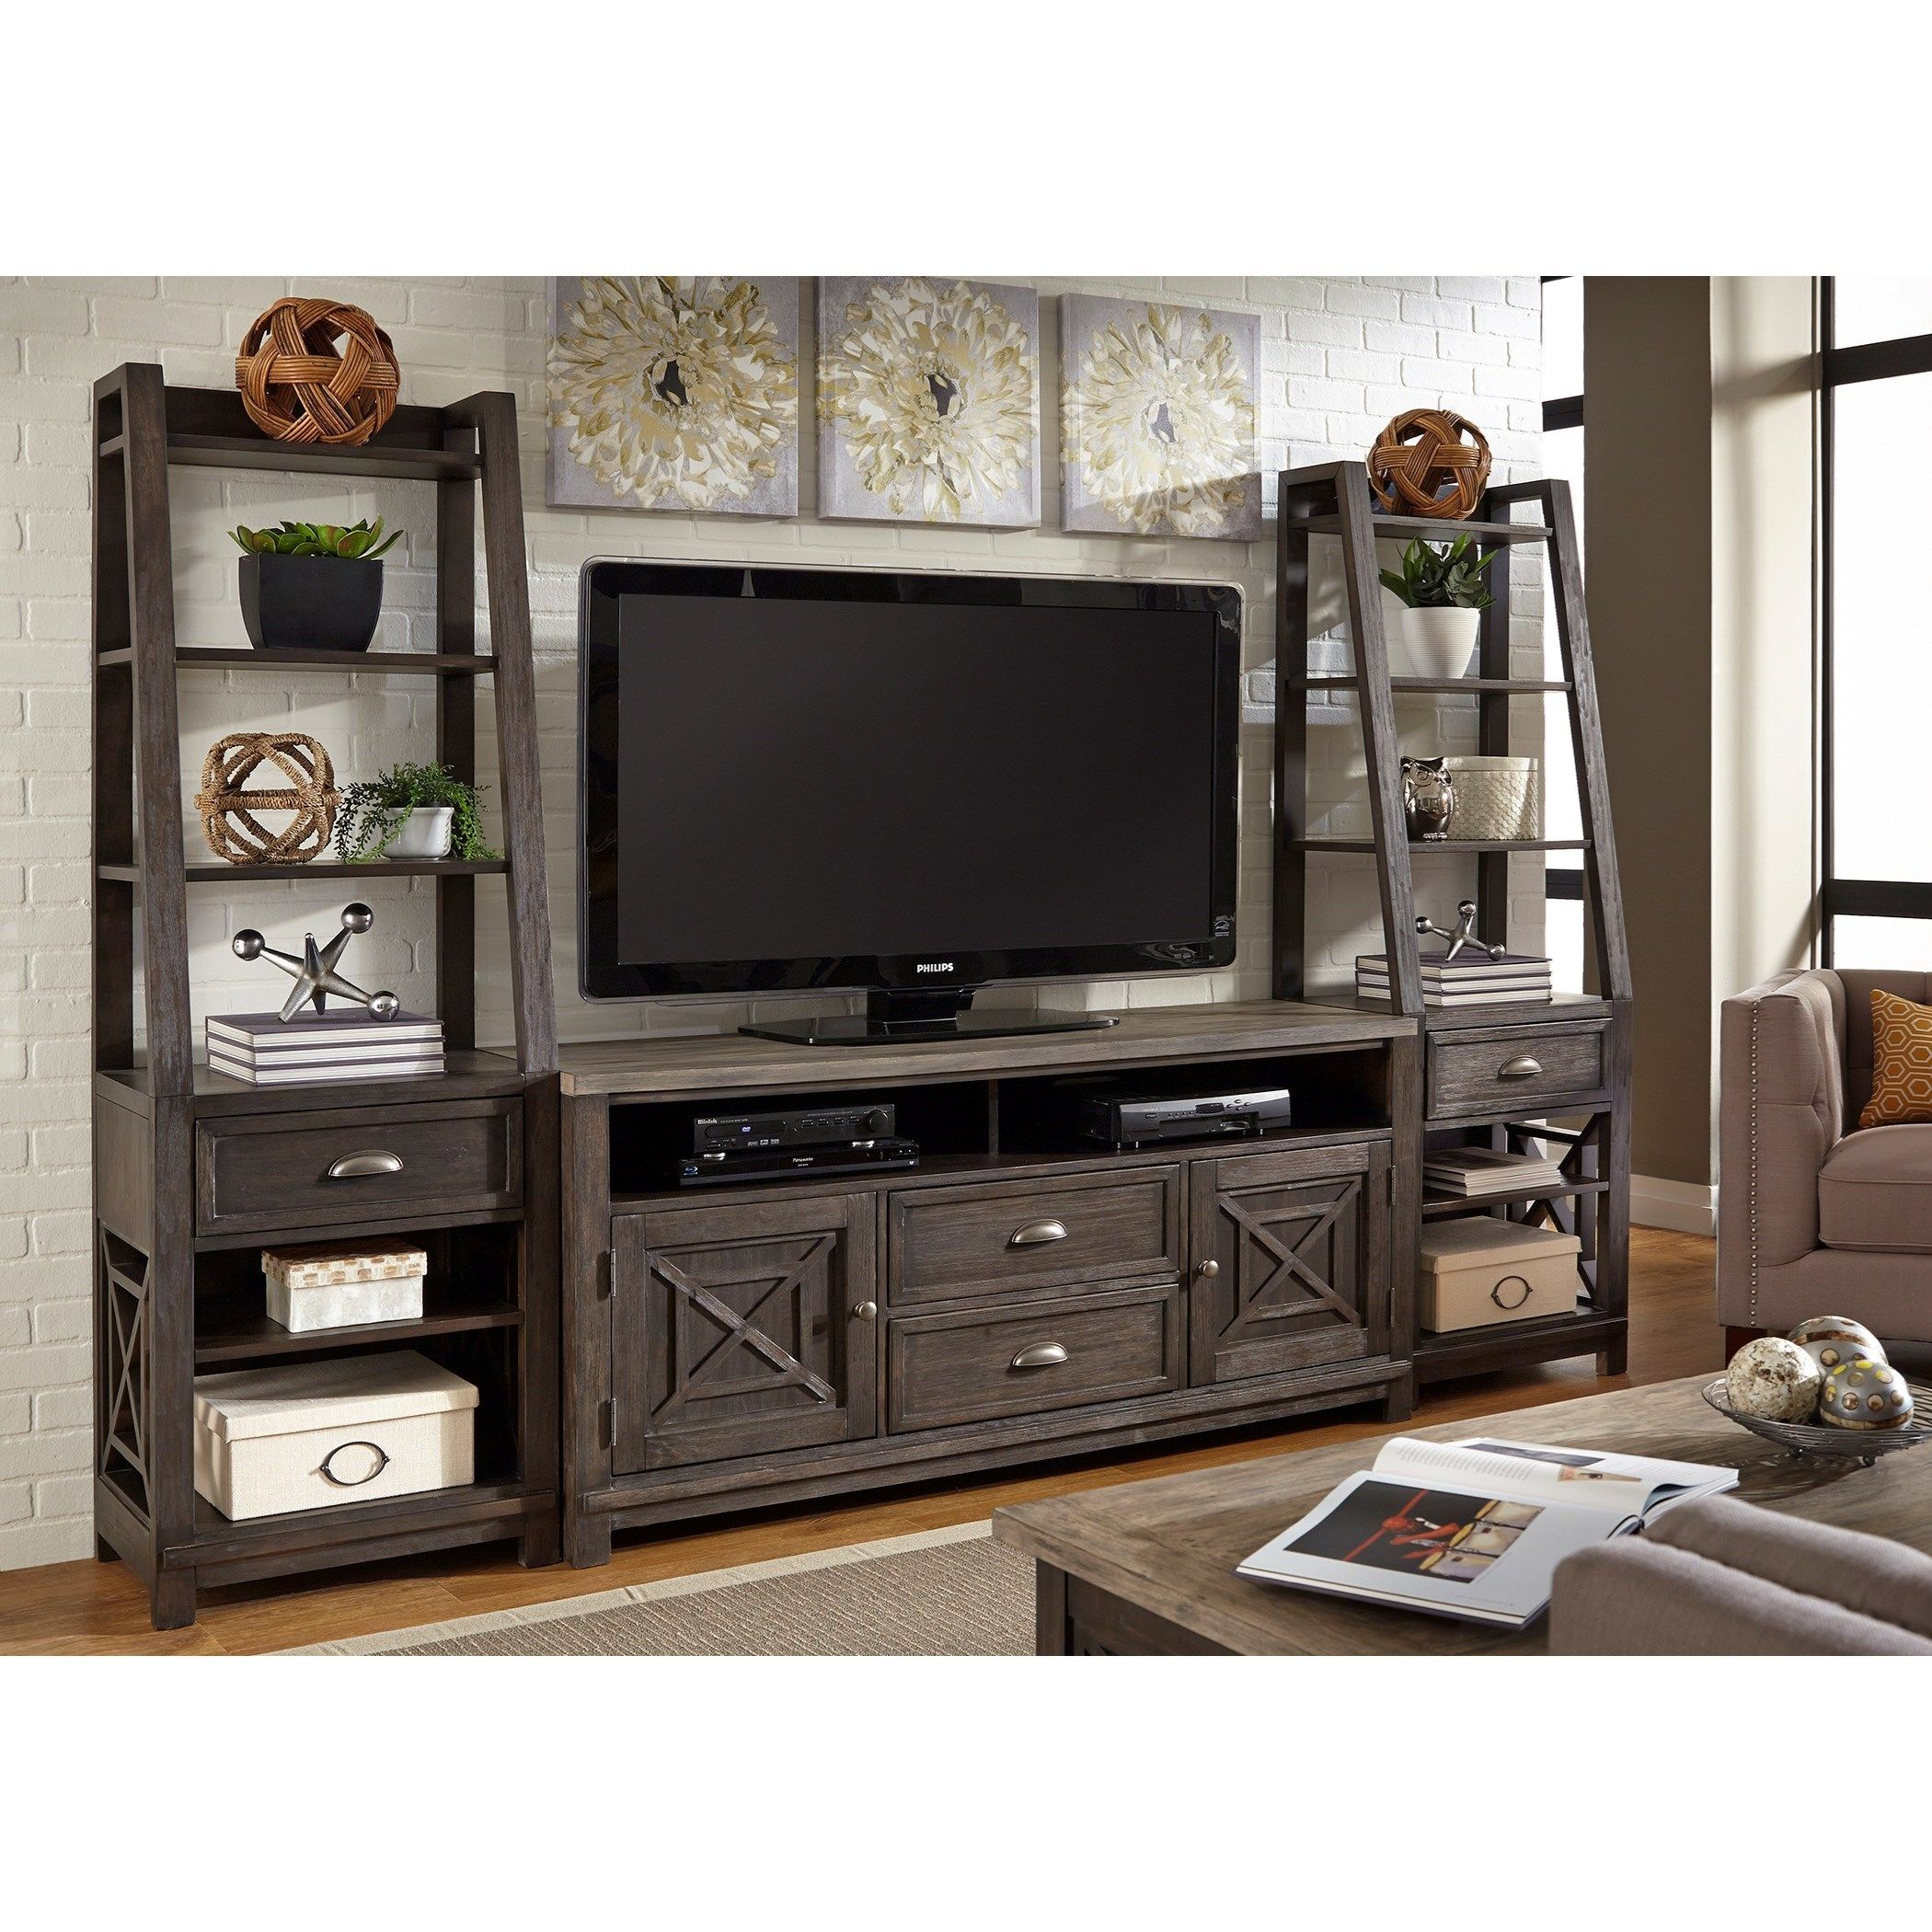 Heatherbrook Transitional Console Bar Table By Liberty Furniture Liberty Furniture Entertainment Wall Units Bedroom Design